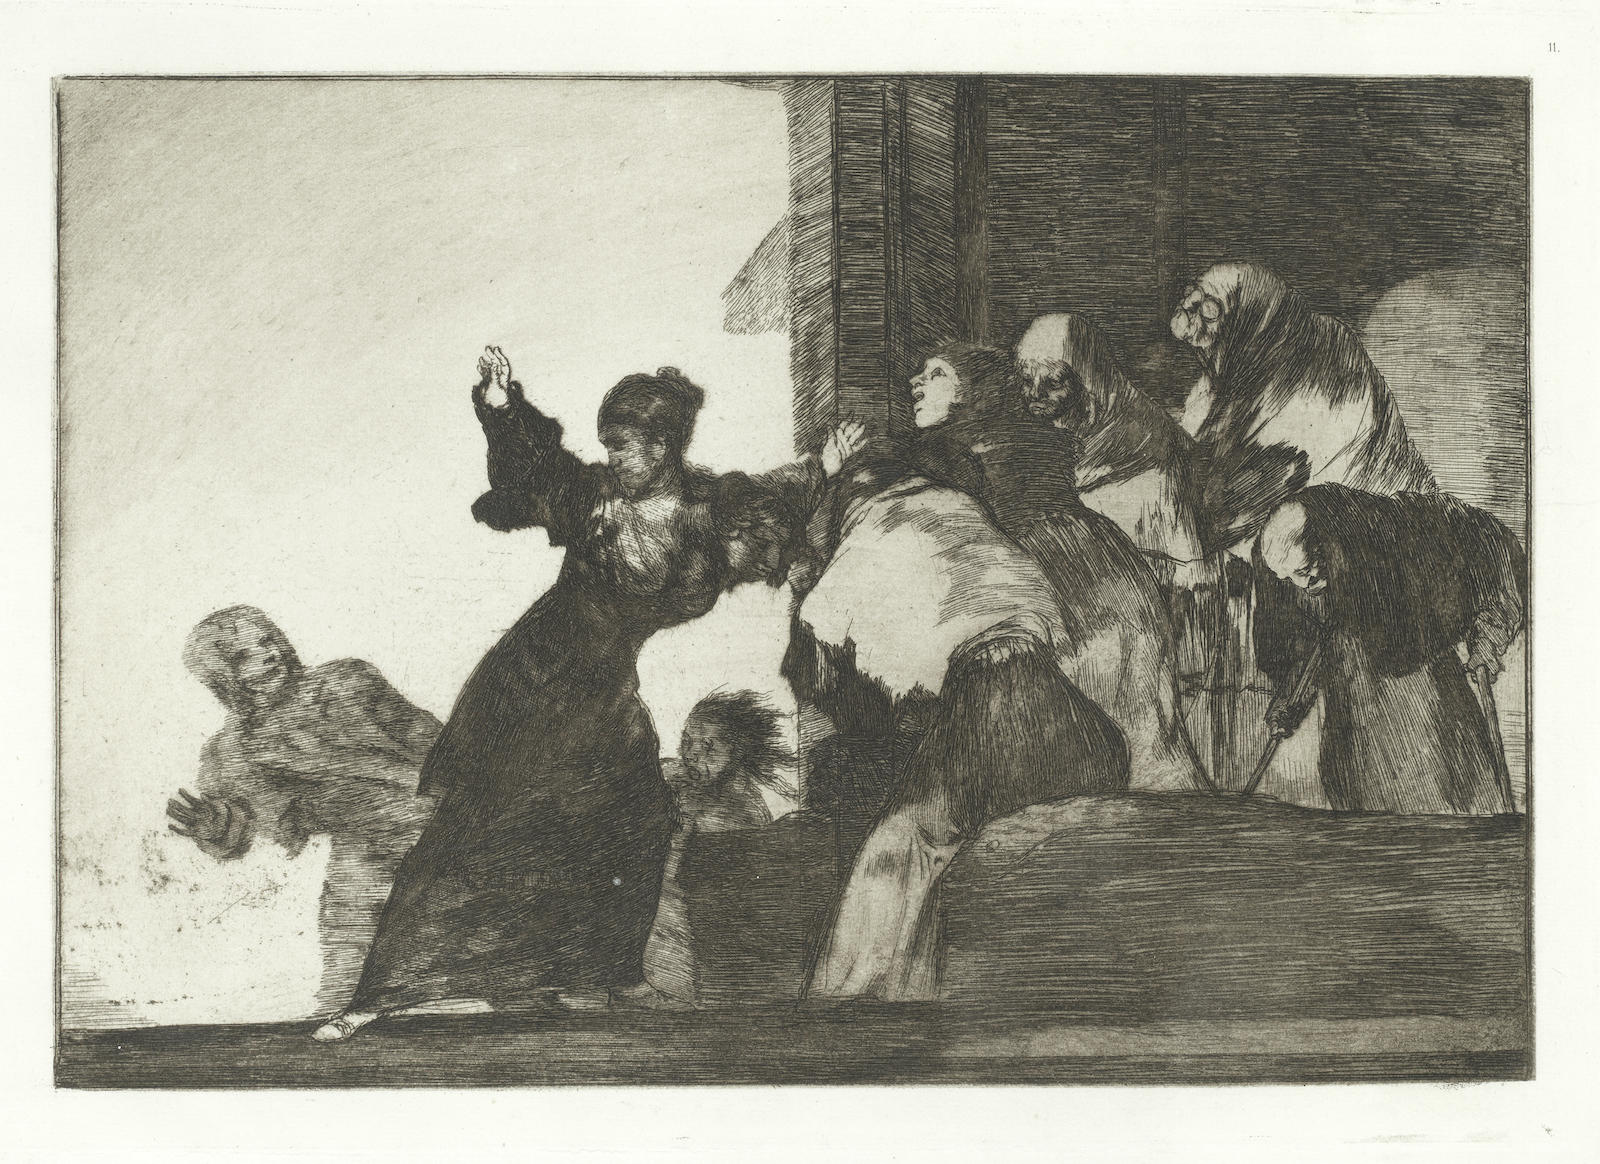 Francisco de Goya-Disparate Pobre, plate 11 from Los Proverbios-